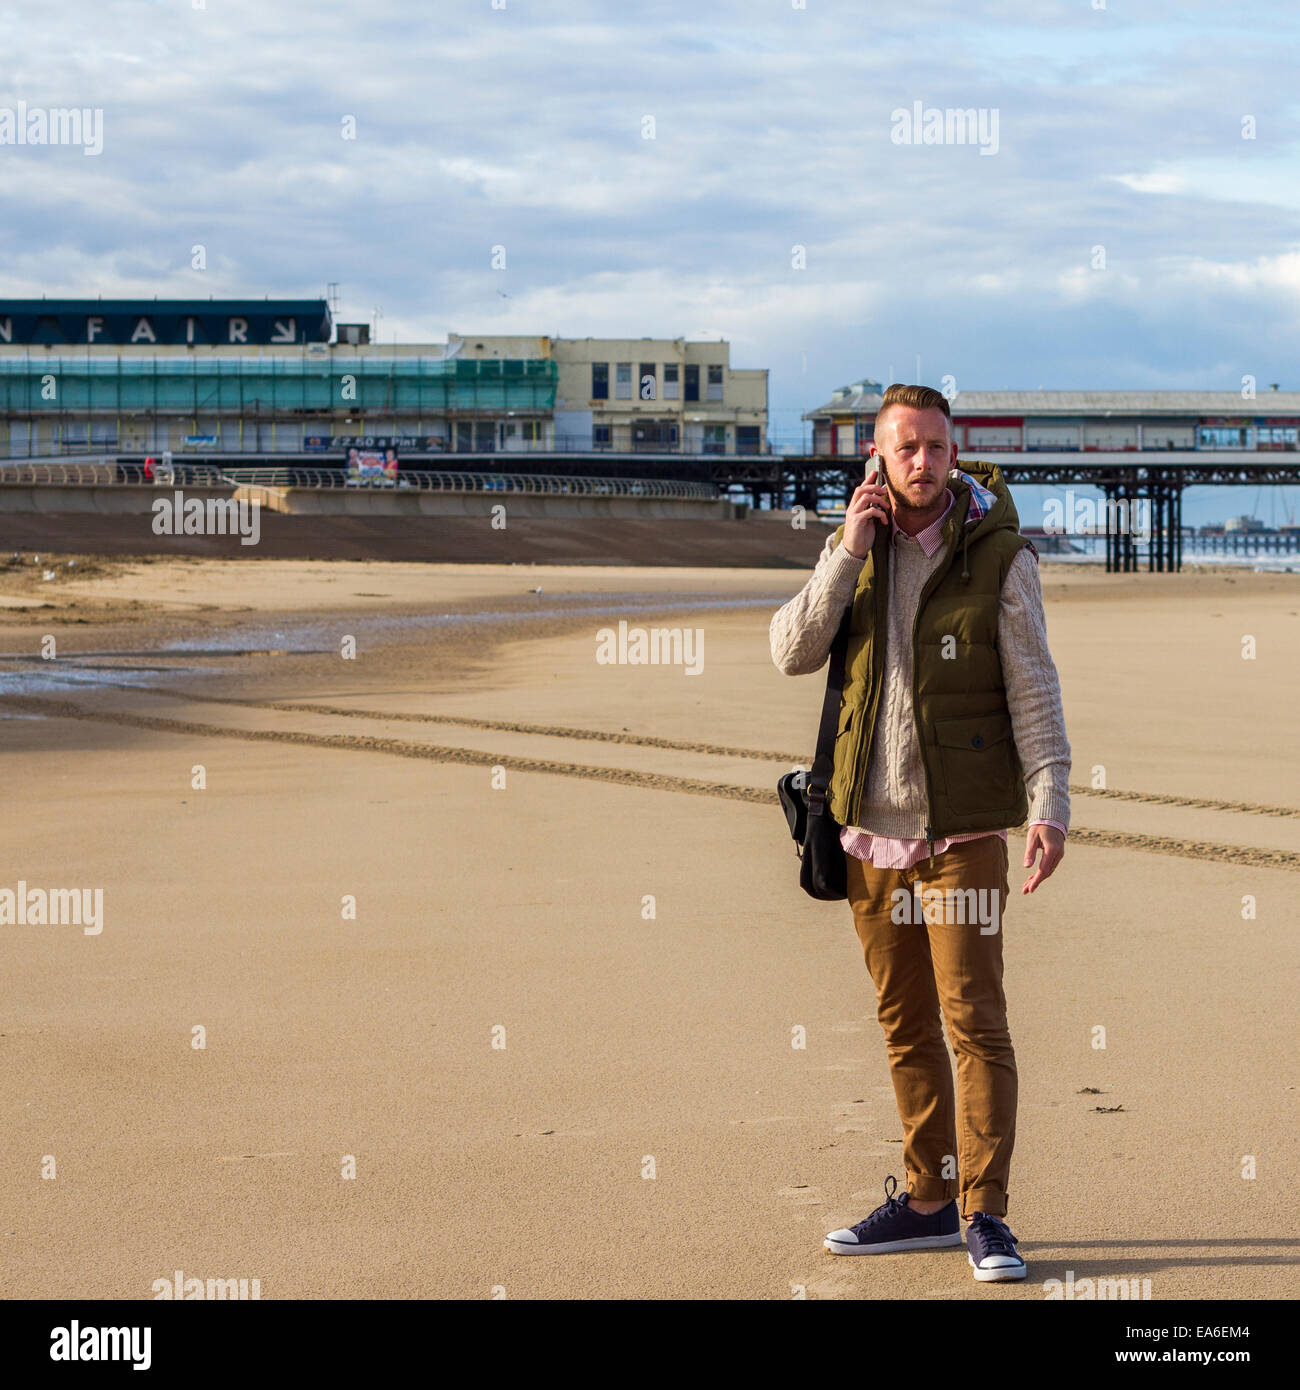 UK, Blackpool, Man with mobile phone on beach - Stock Image